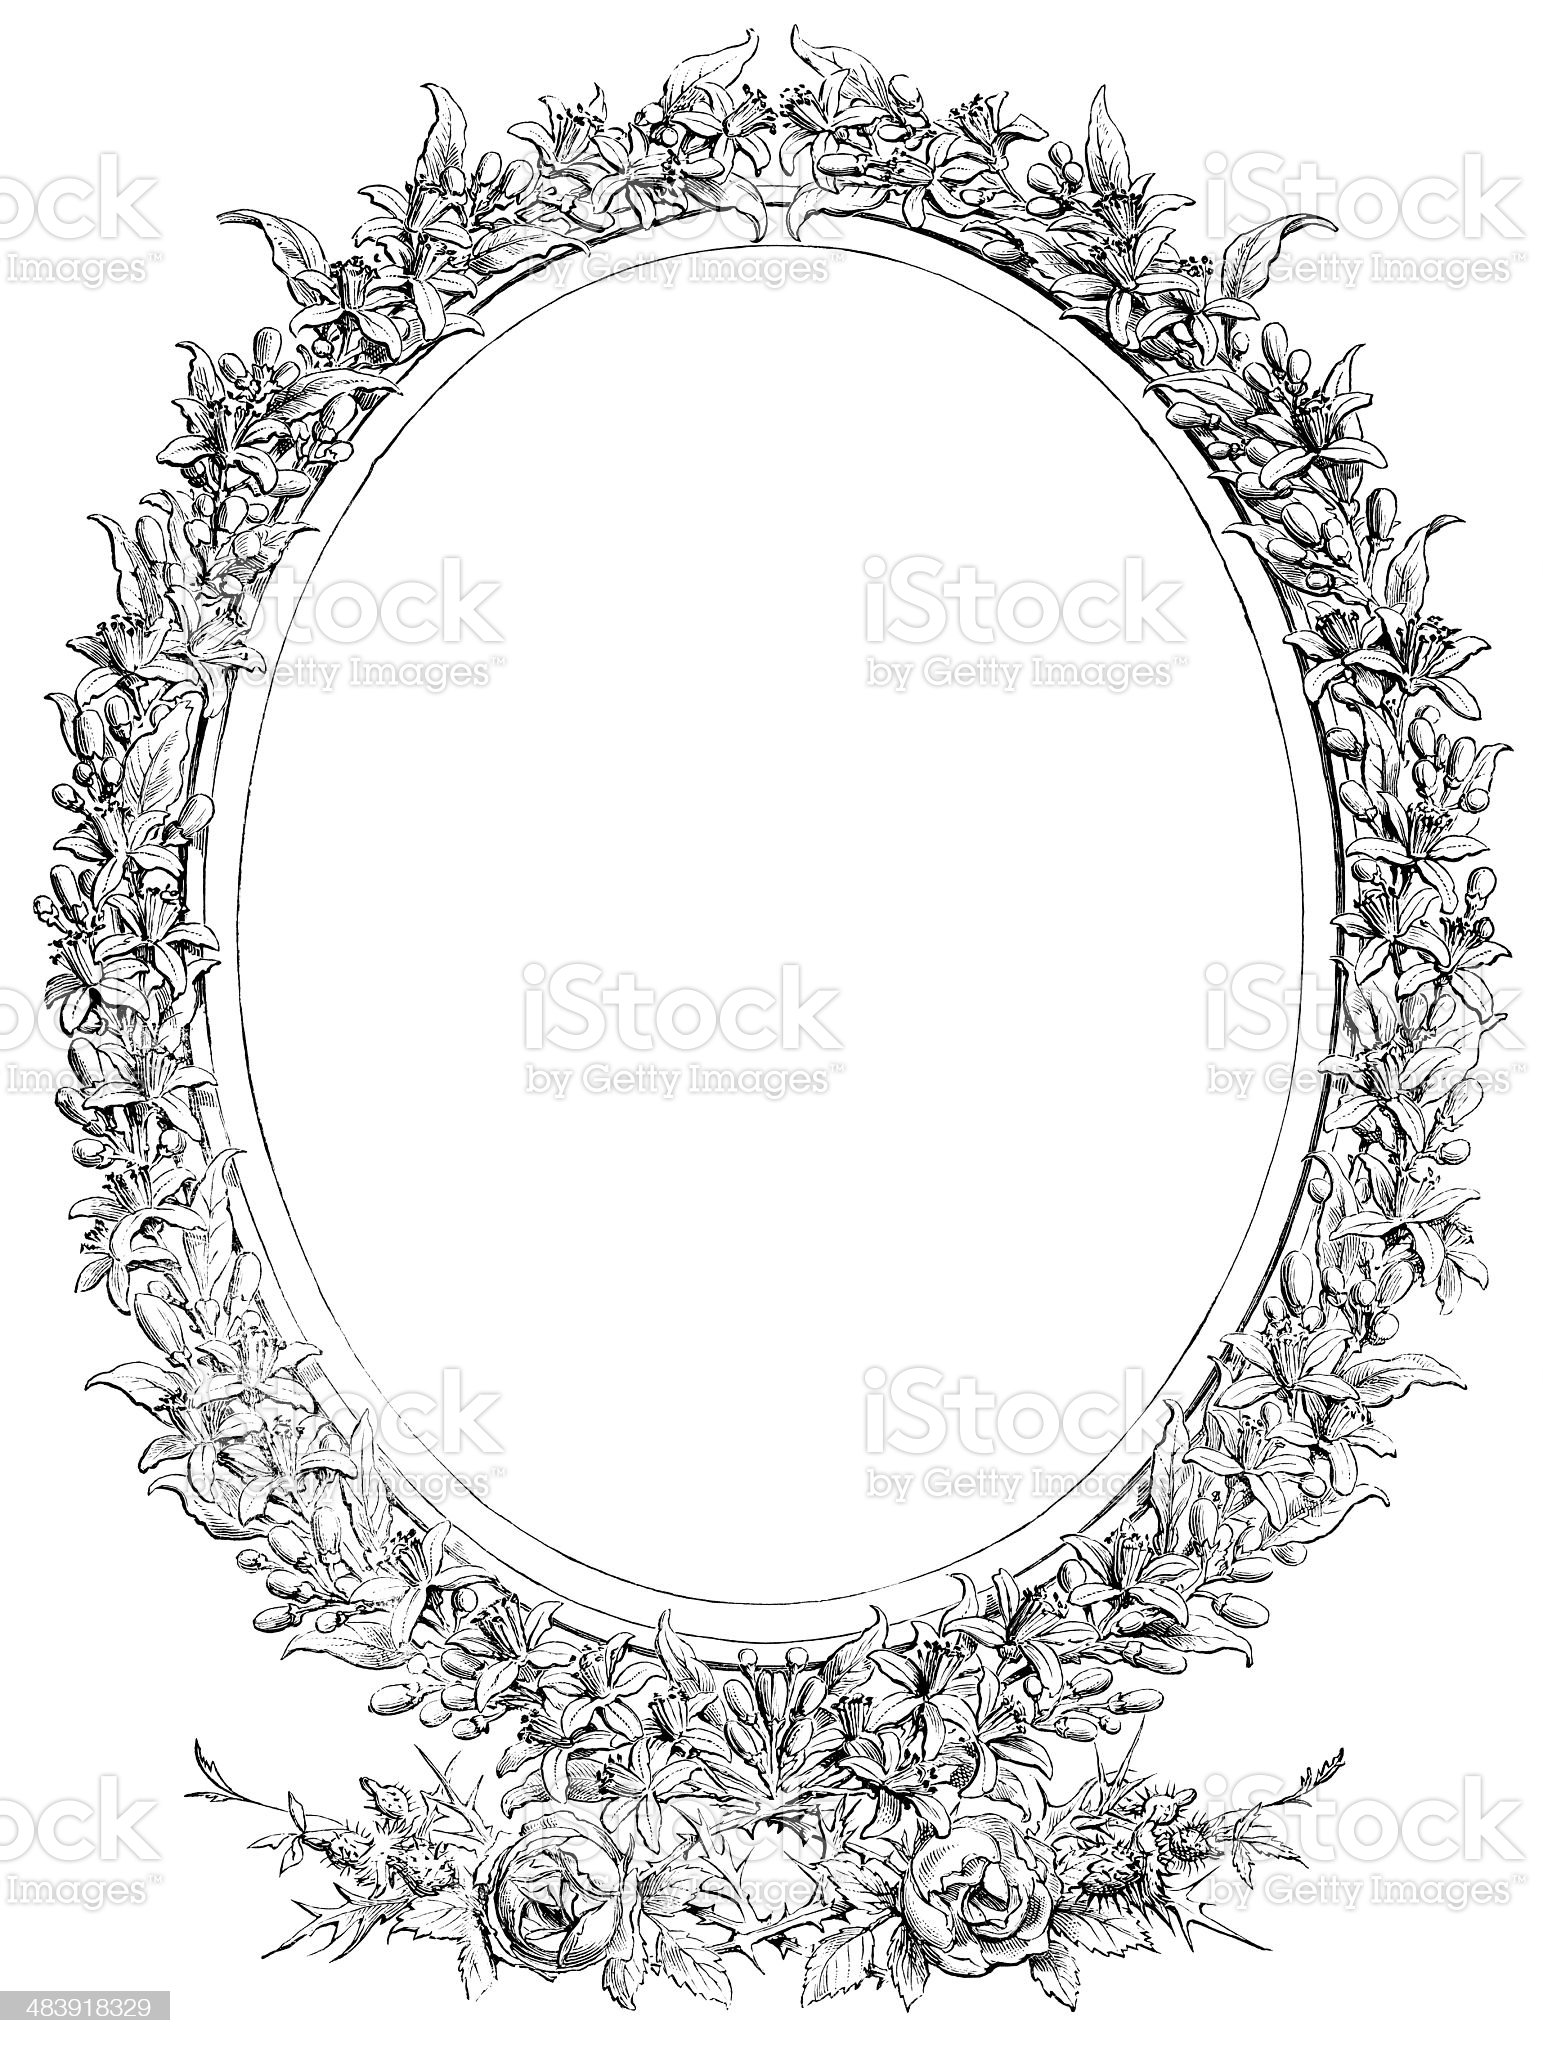 Empty Victorian woodcut floral frame royalty-free stock vector art